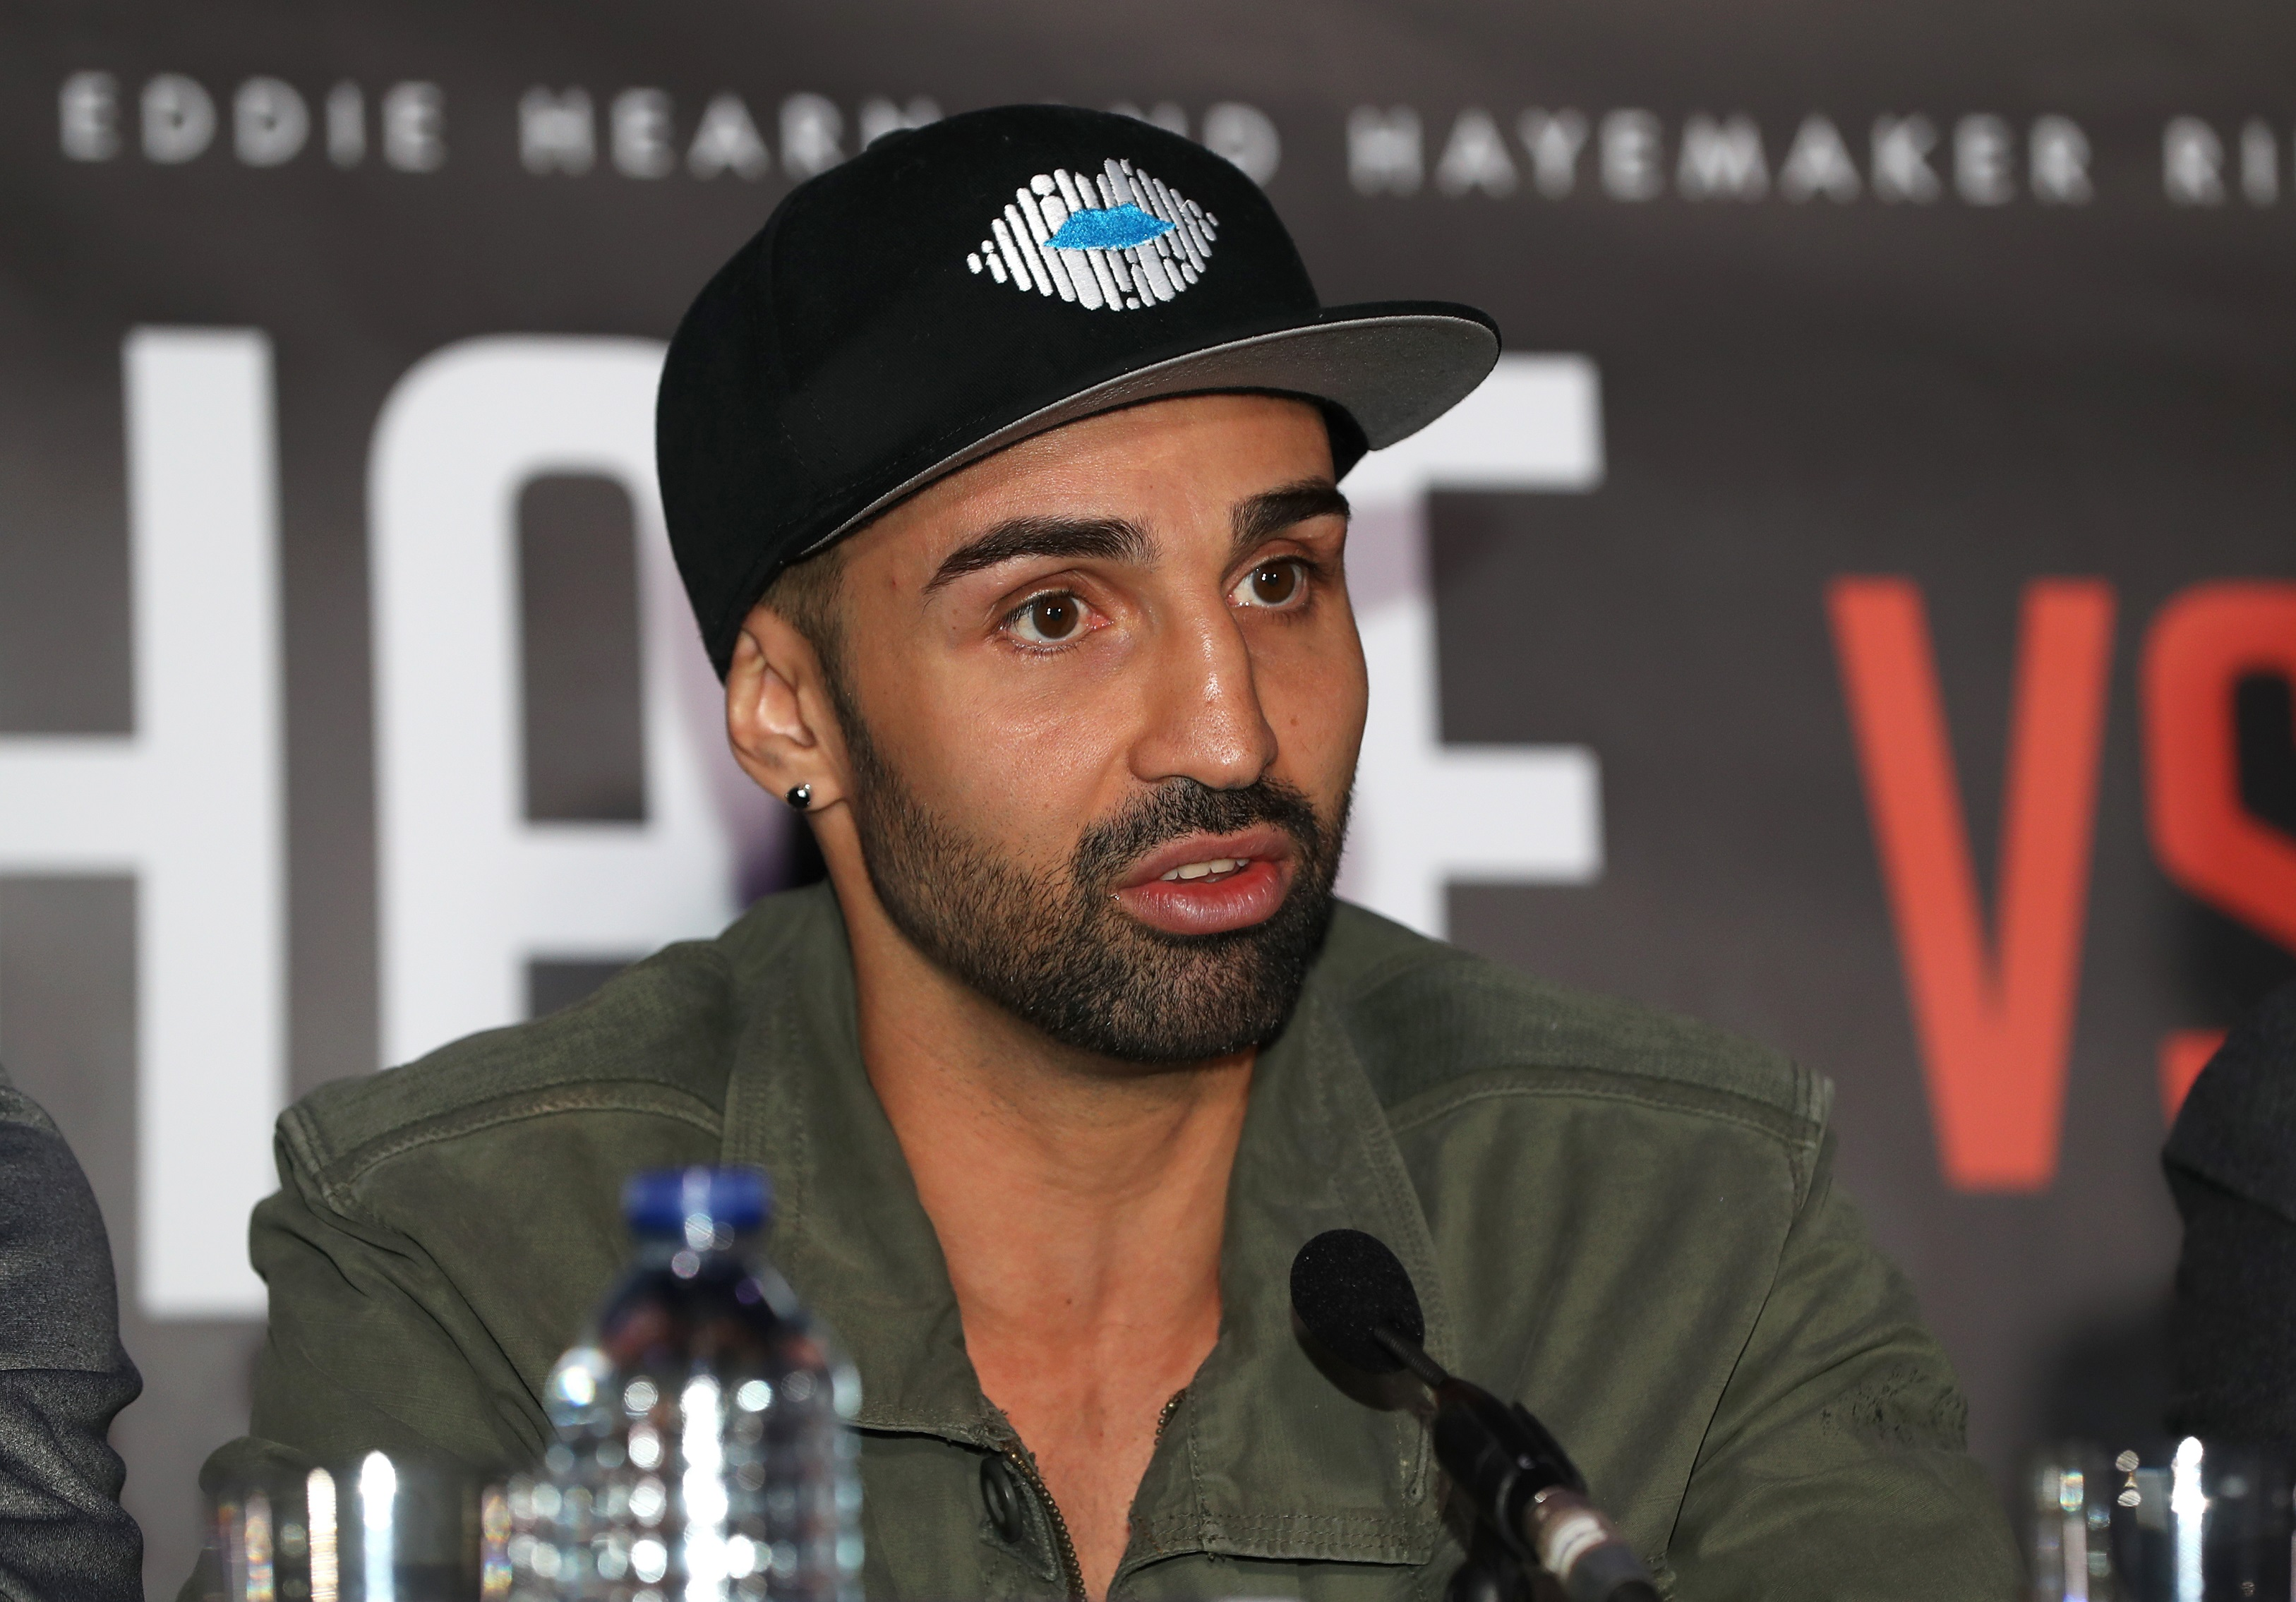 Paulie Malignaggi during a press conference